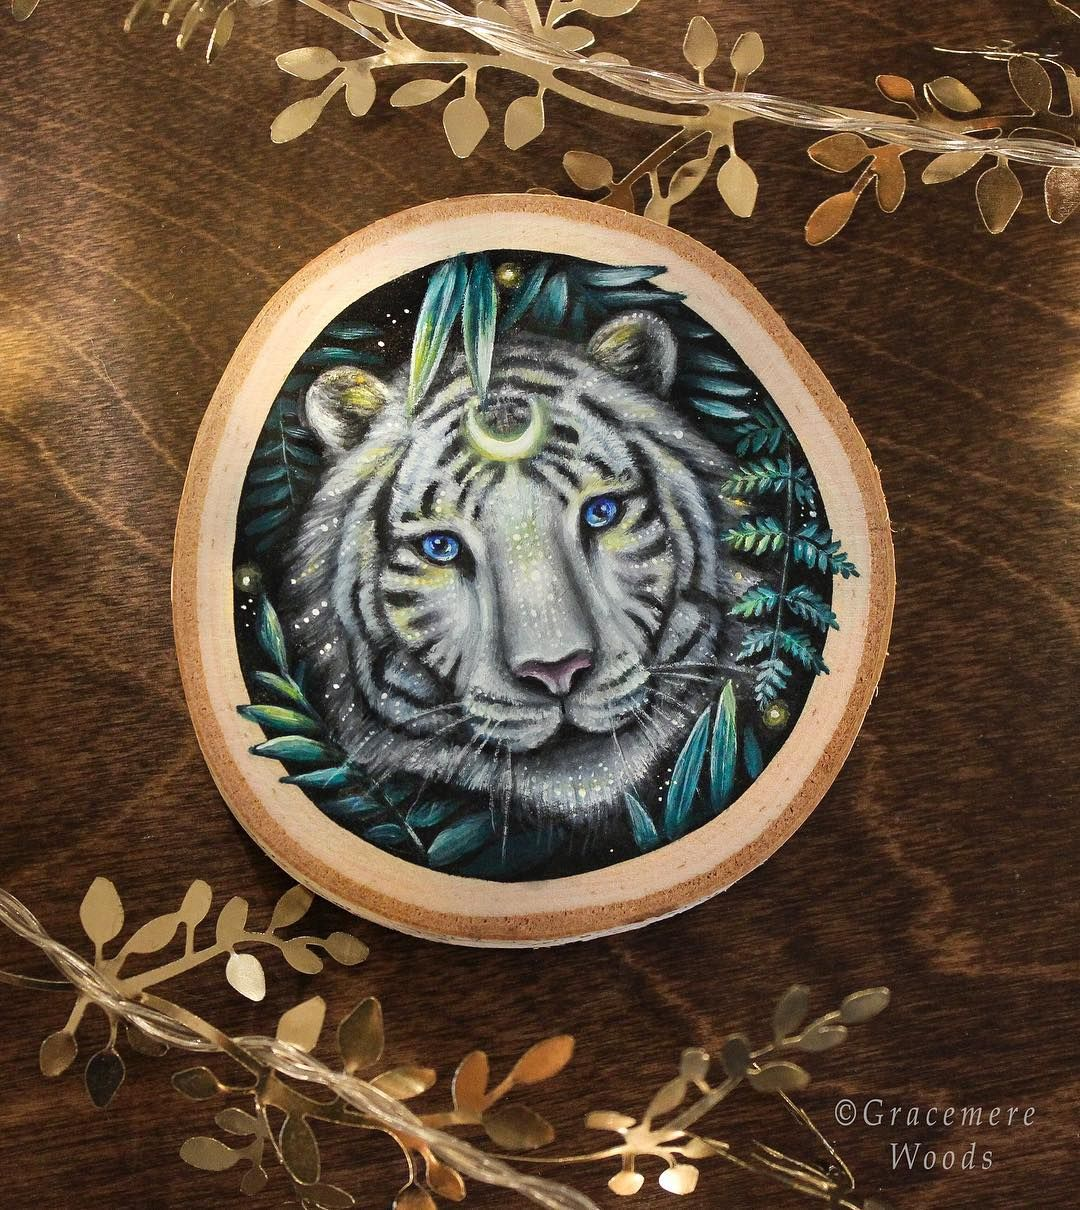 Happy First Of December This White Bengal Tiger Is One Of